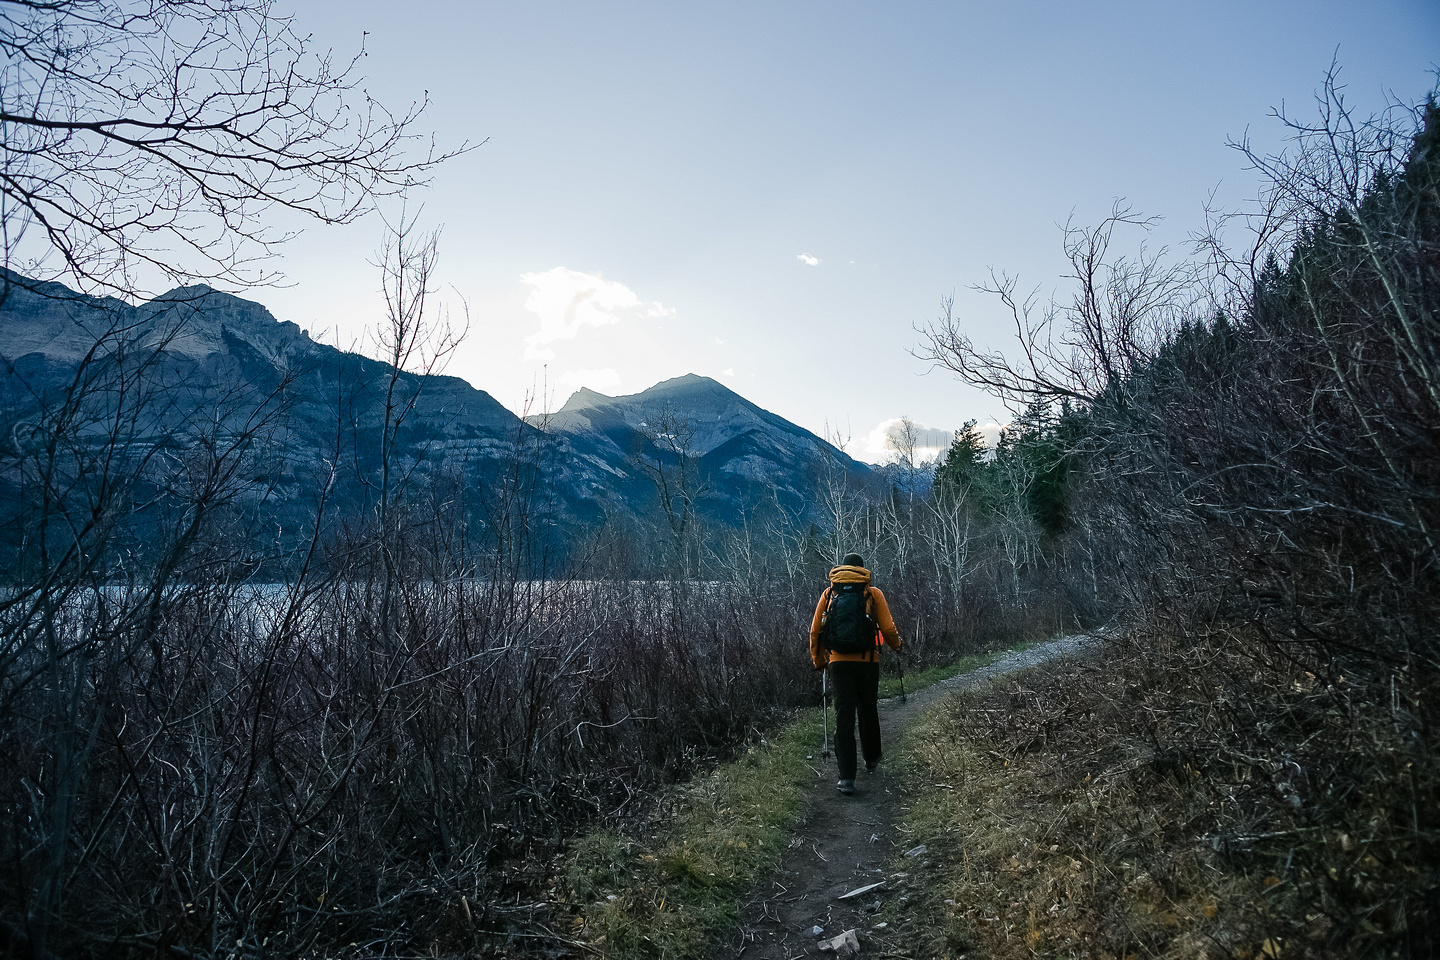 The morning was very warm and pleasant as we made our way up the Bertha Lake trail.